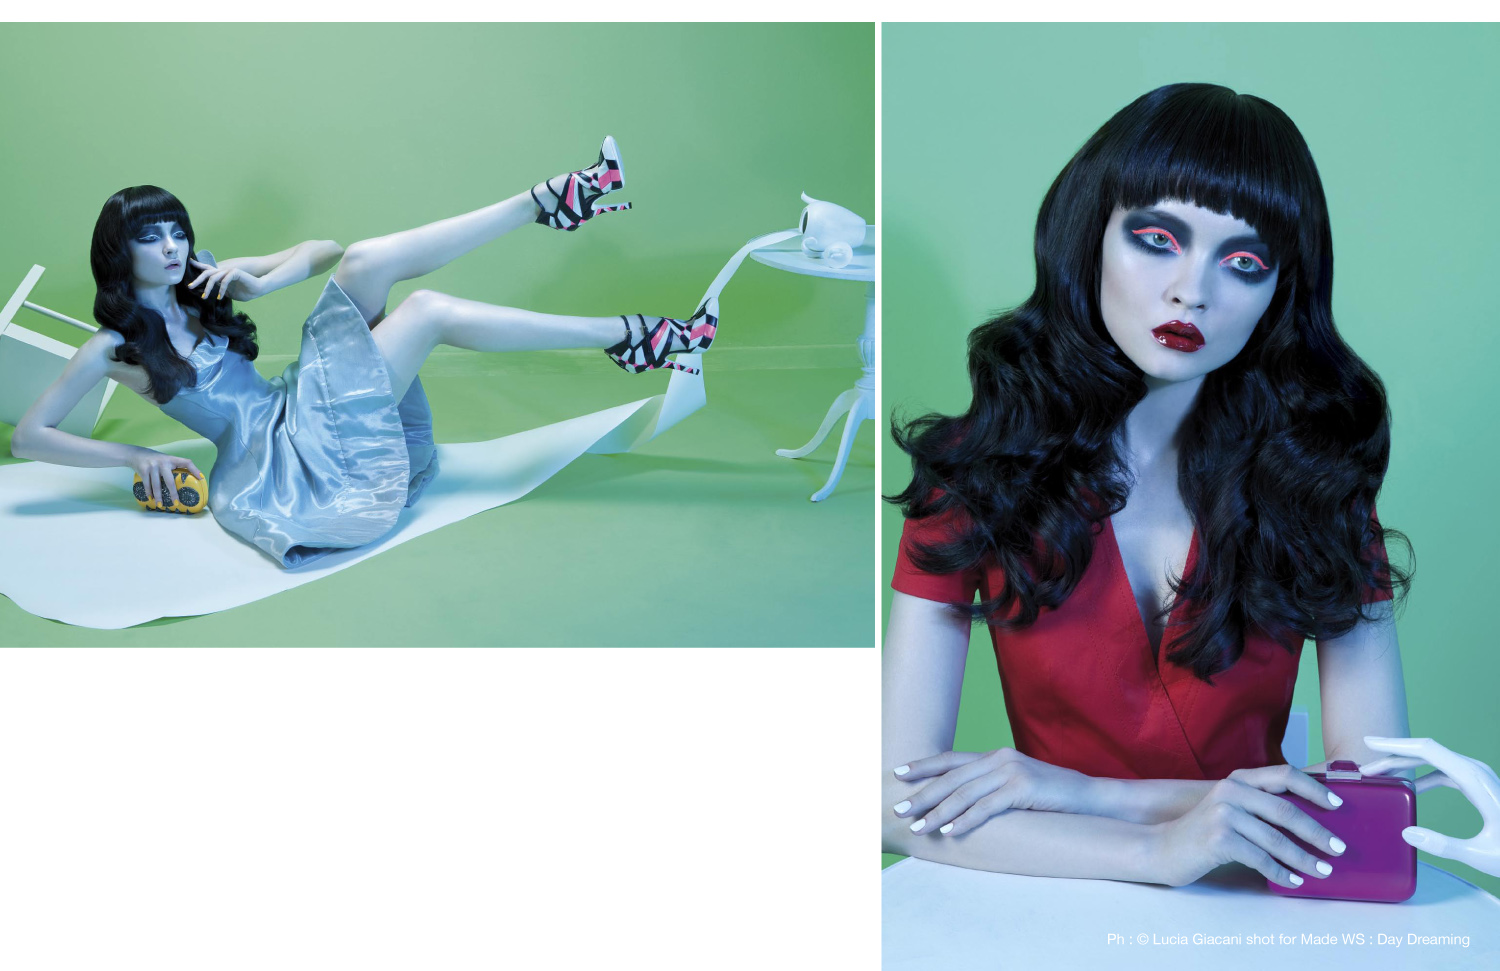 Voir Fashion Magazine Issue 8 - In Focus feature Ph : © Lucia Giacani shot for Made WS : Day Dreaming